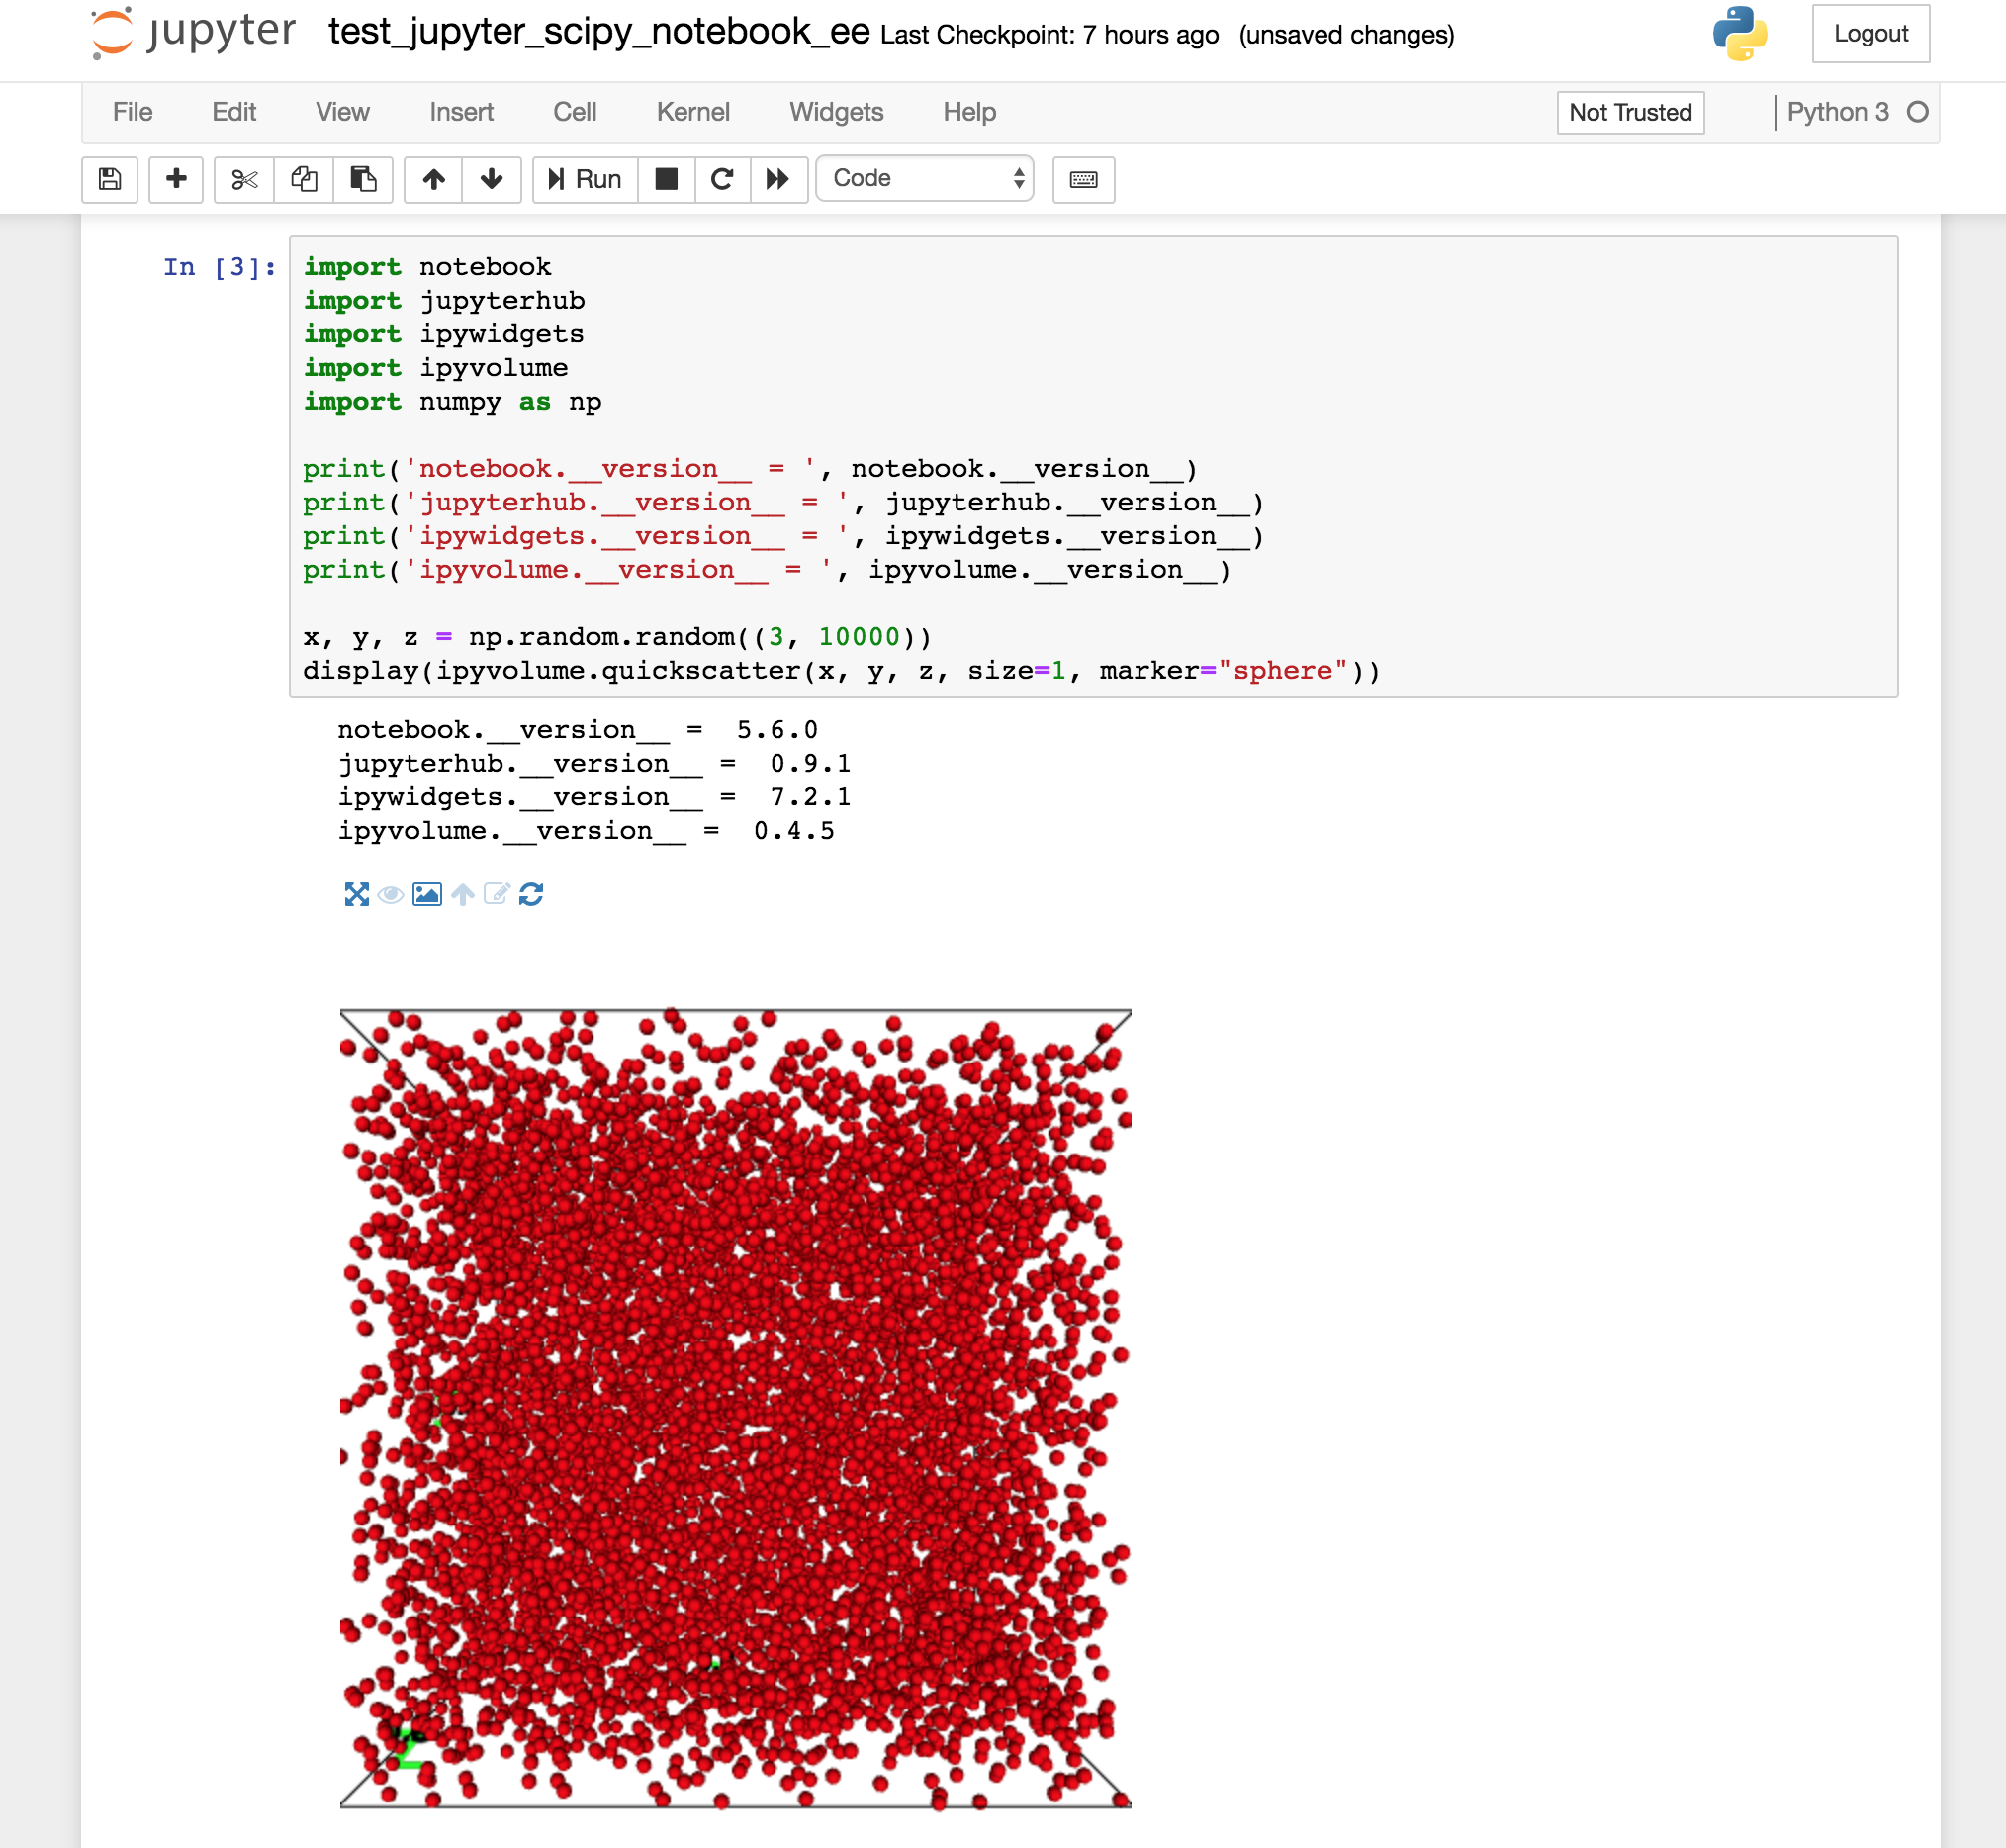 ipyvolume fails to render using jupyter/scipy-notebook